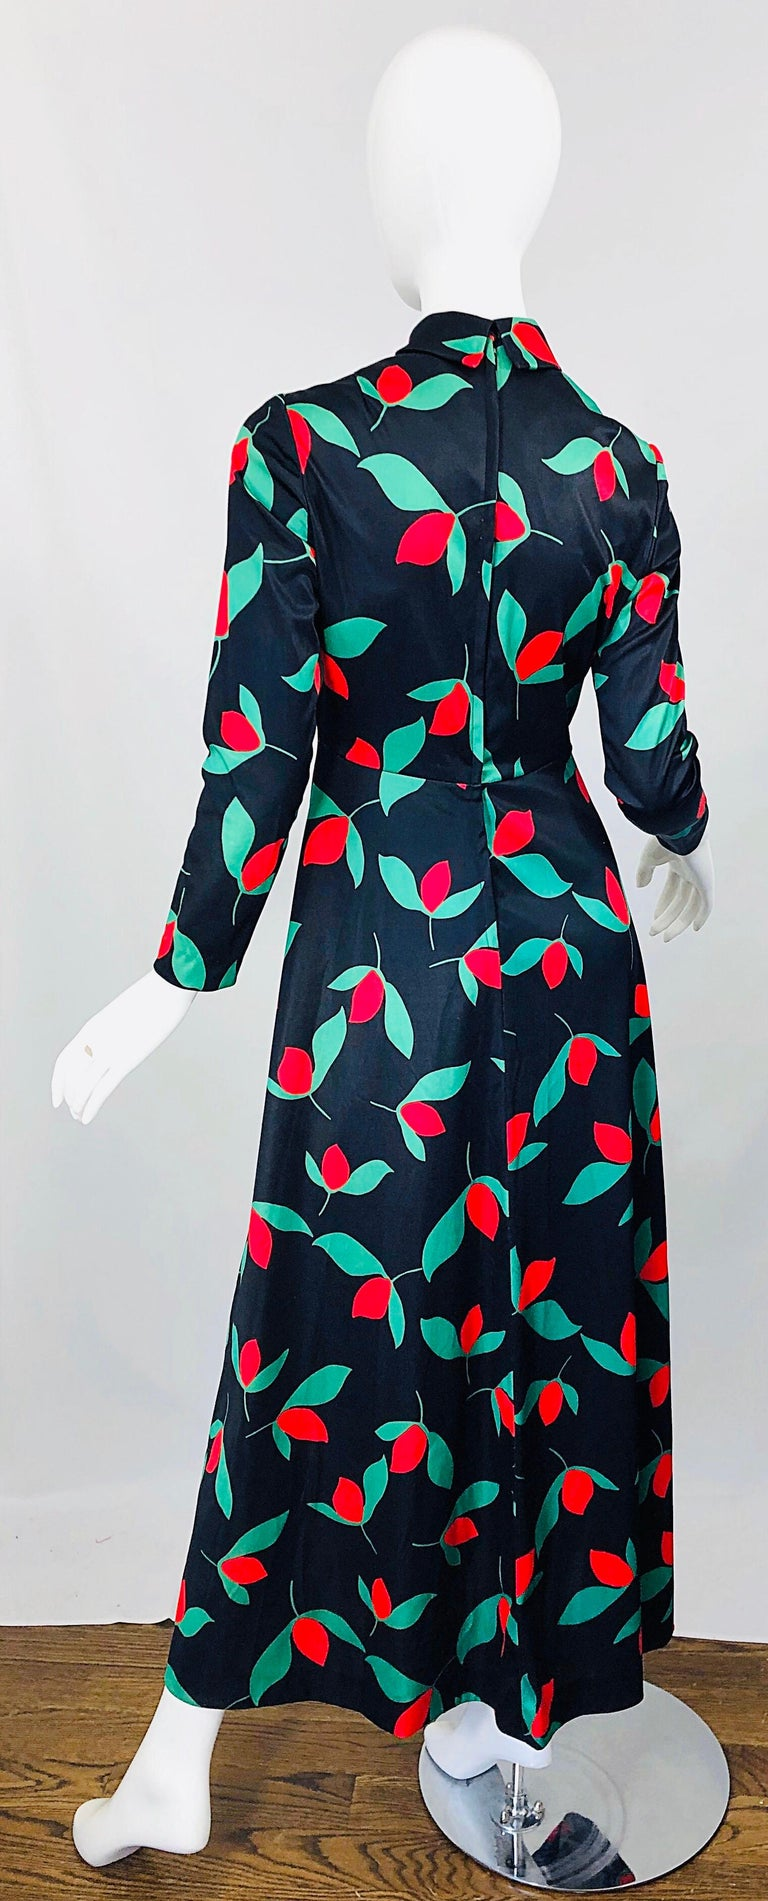 1970s Emilio Borghese Tulip Print Black + Green + Red Vintage 70s Maxi Dress For Sale 9